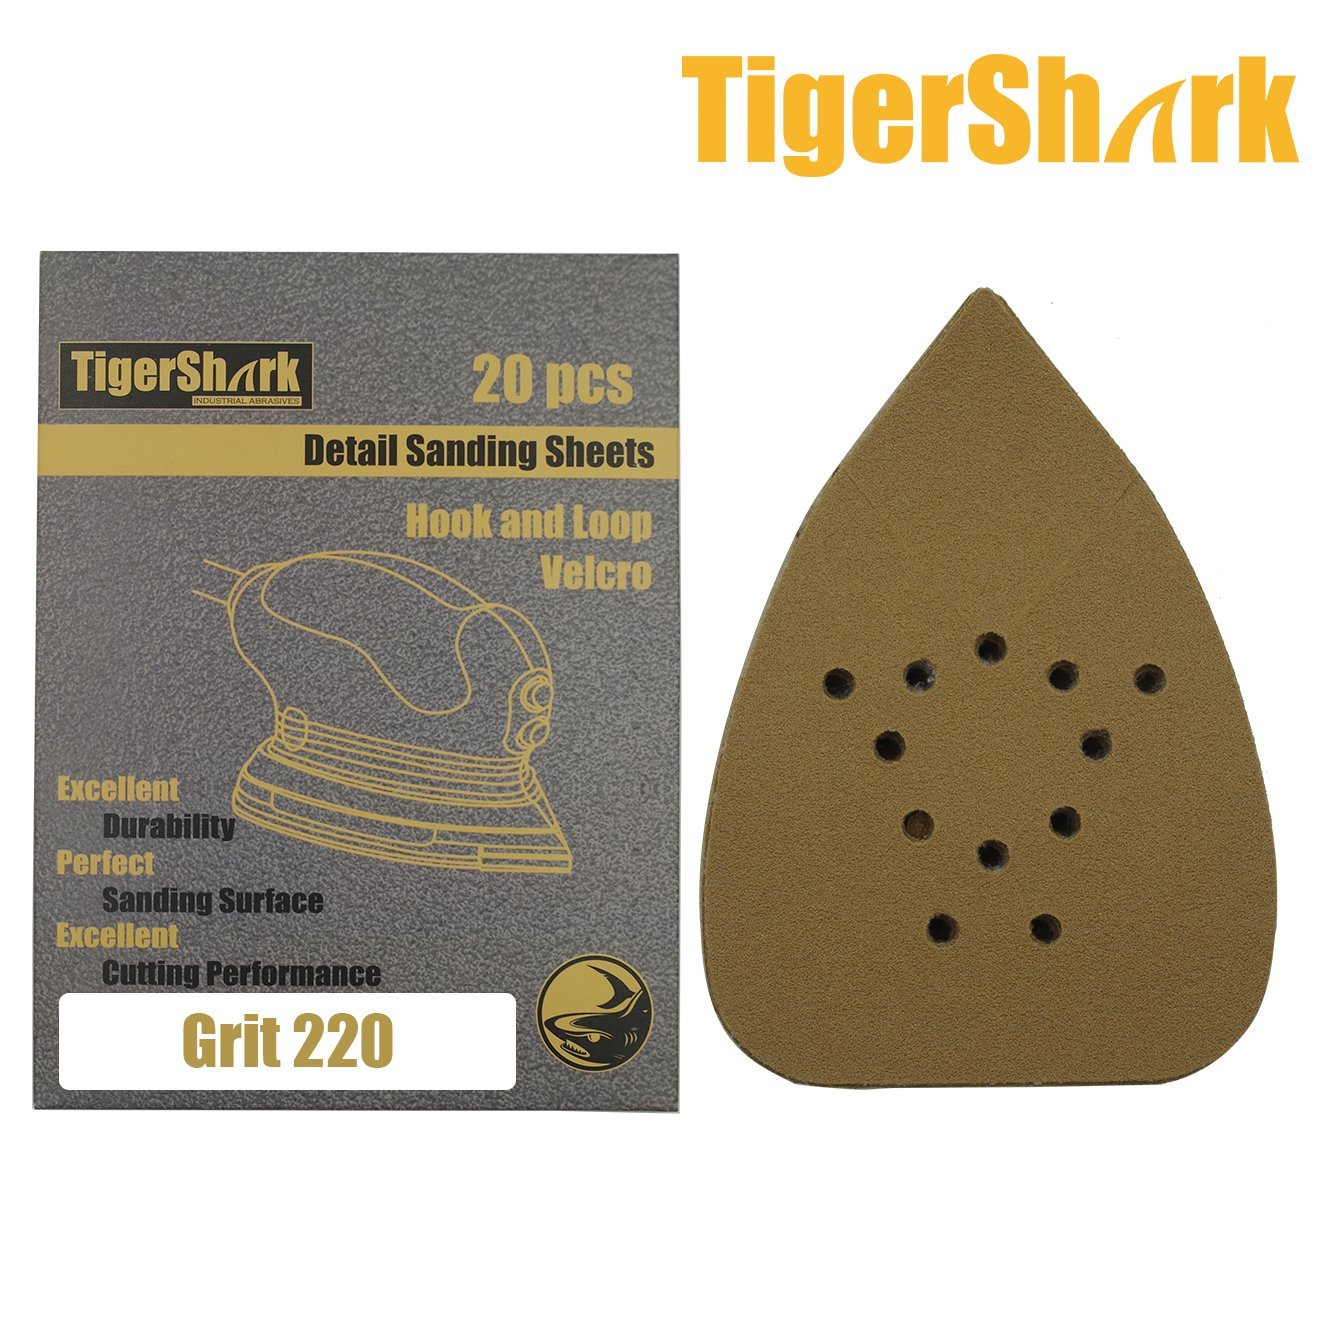 TigerShark 5-1//4 by 3-3//4 Mouse Detail Sanding Sheets Sander Paper Pads 133mm by 95mm for B/&D Grit 80 Hook and Loop 20-Pack